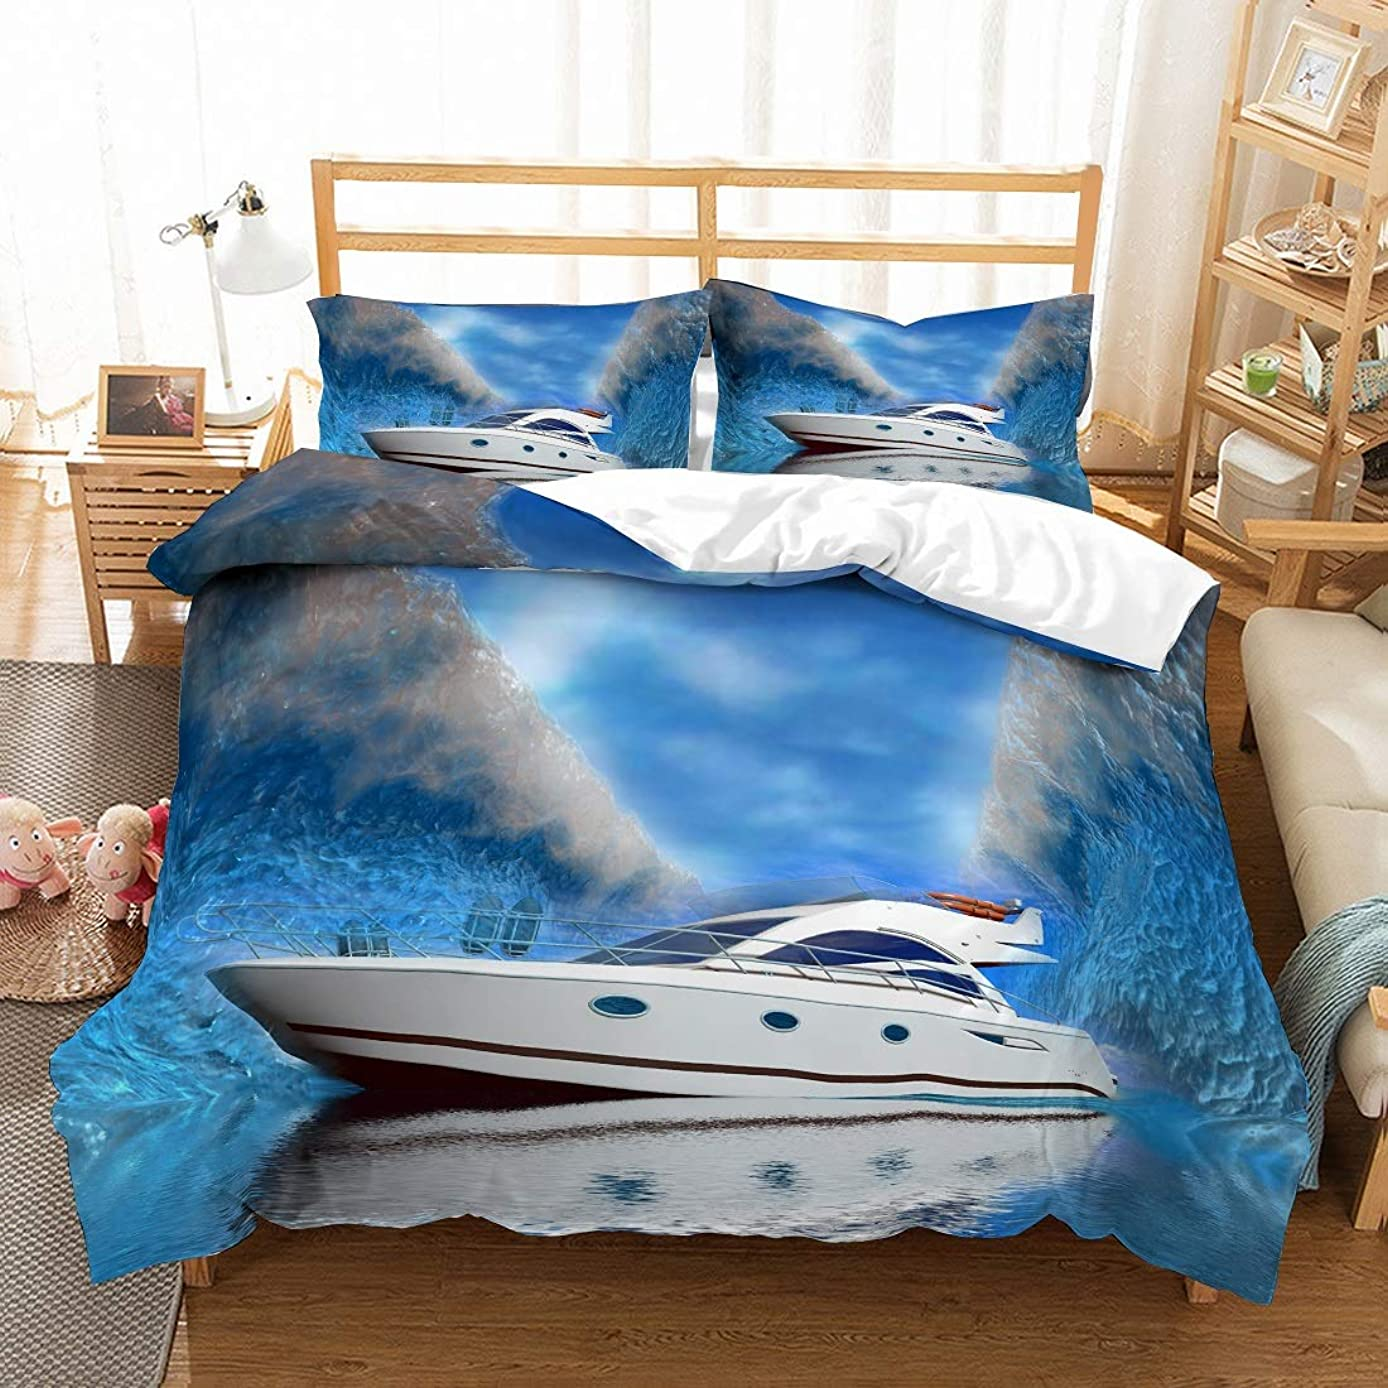 PATATINO MIO Boat Duvet Cover Set Queen Size 3D Show Boat Printed on Peaceful Ocean Big Waves Blue/White Bedding Set for Adults,Boys and Girls,3 Pieces with 2 Pillow Sham,No Comforter